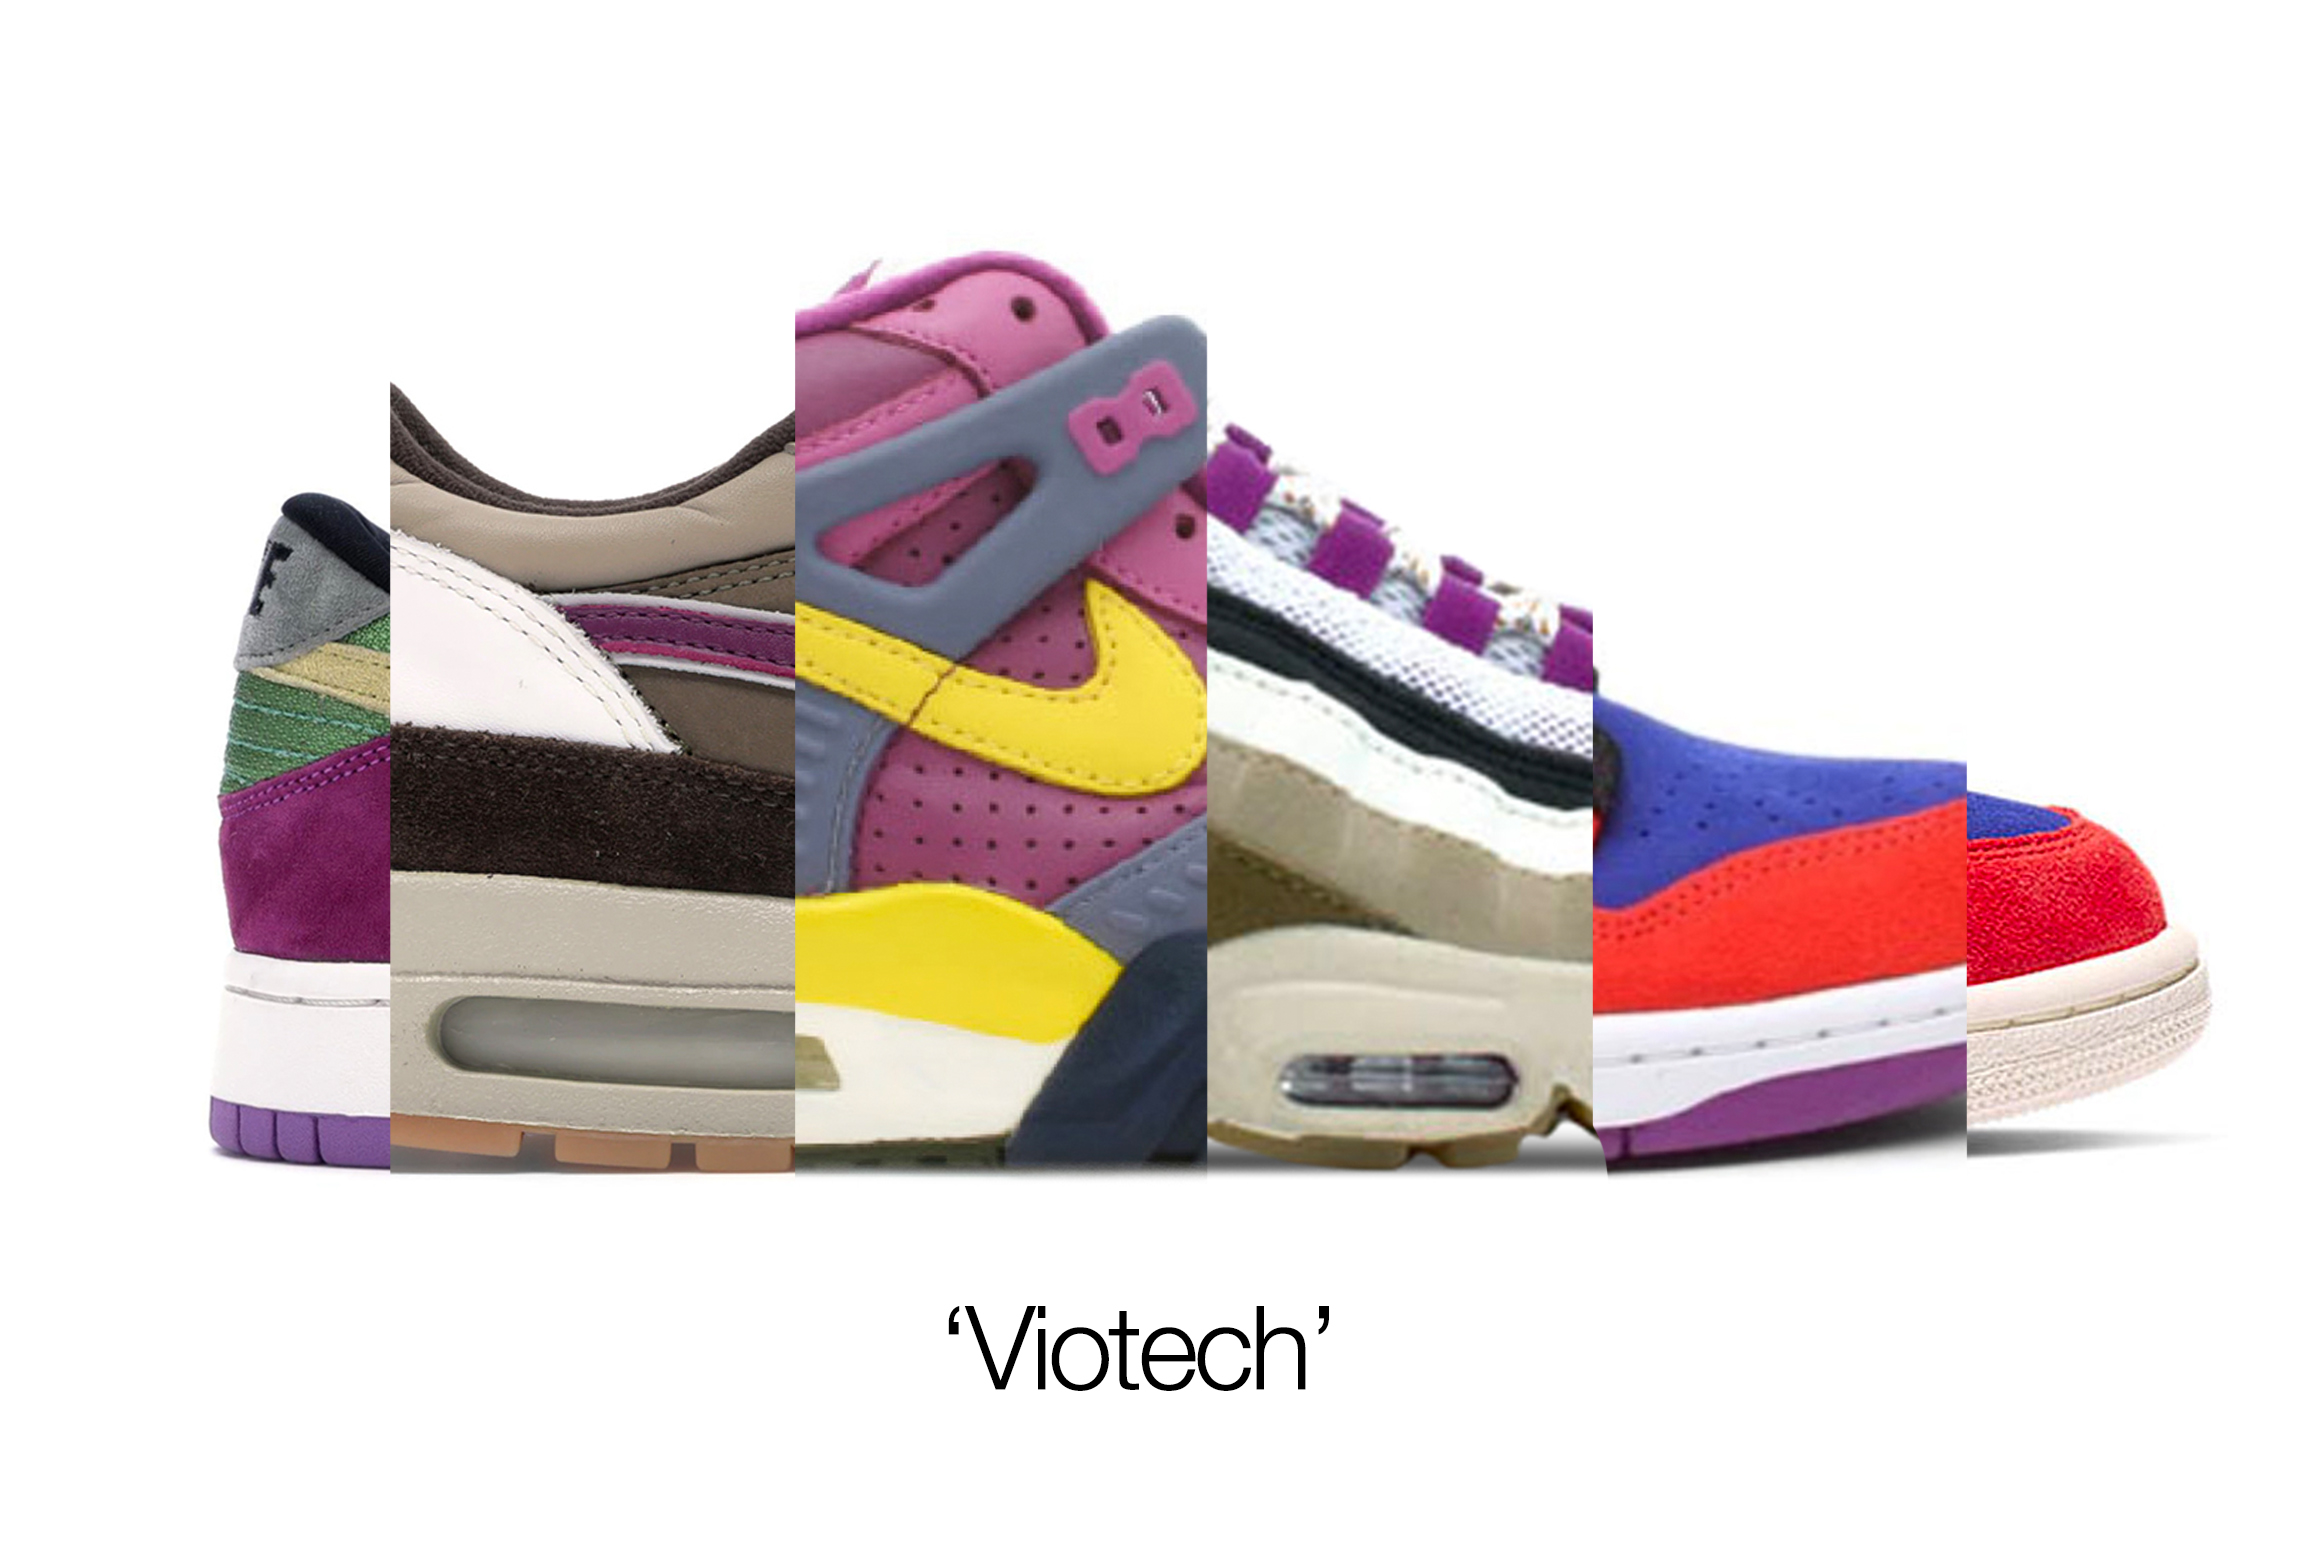 A Brief History of Nike's 'Viotech' Purple